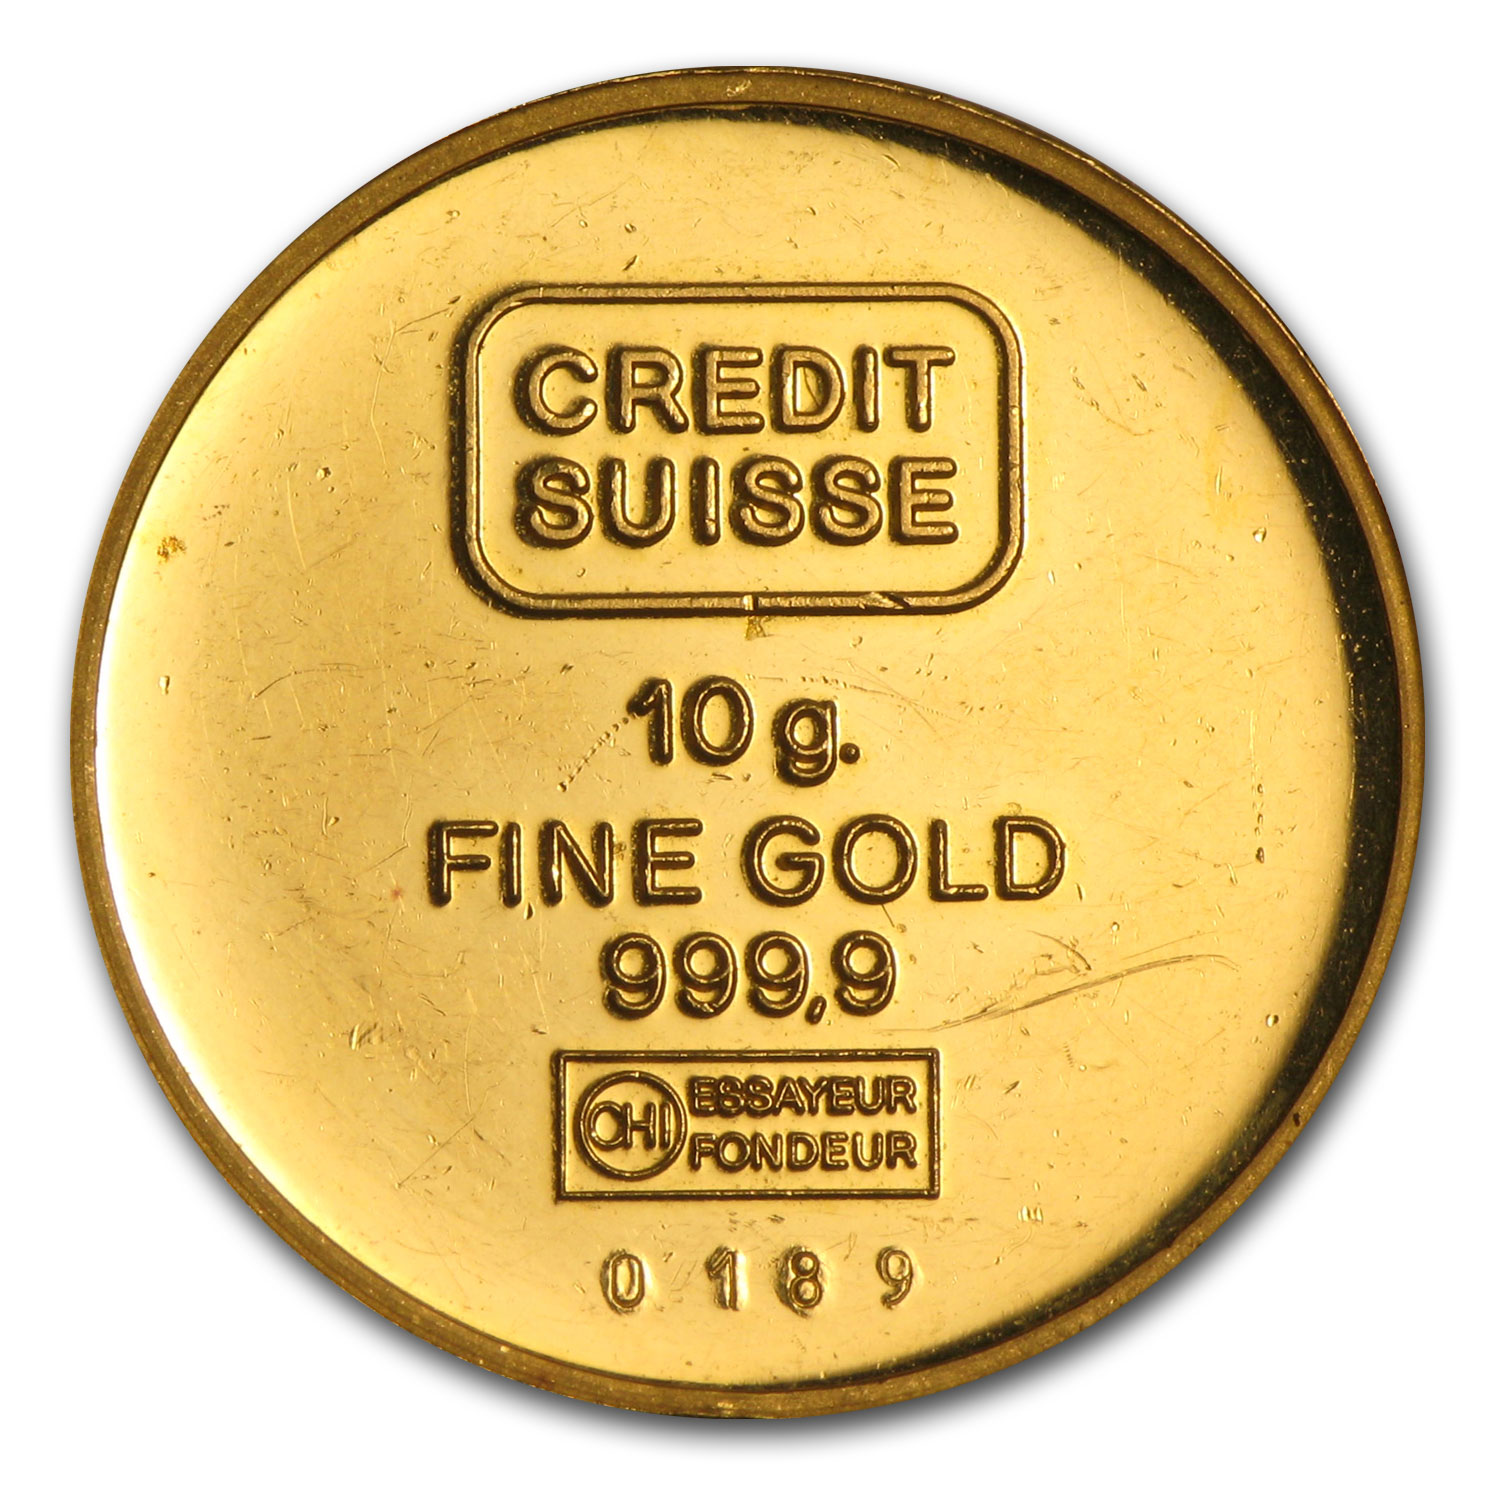 10 gram Gold Rounds - Credit Suisse (Virgin Islands)